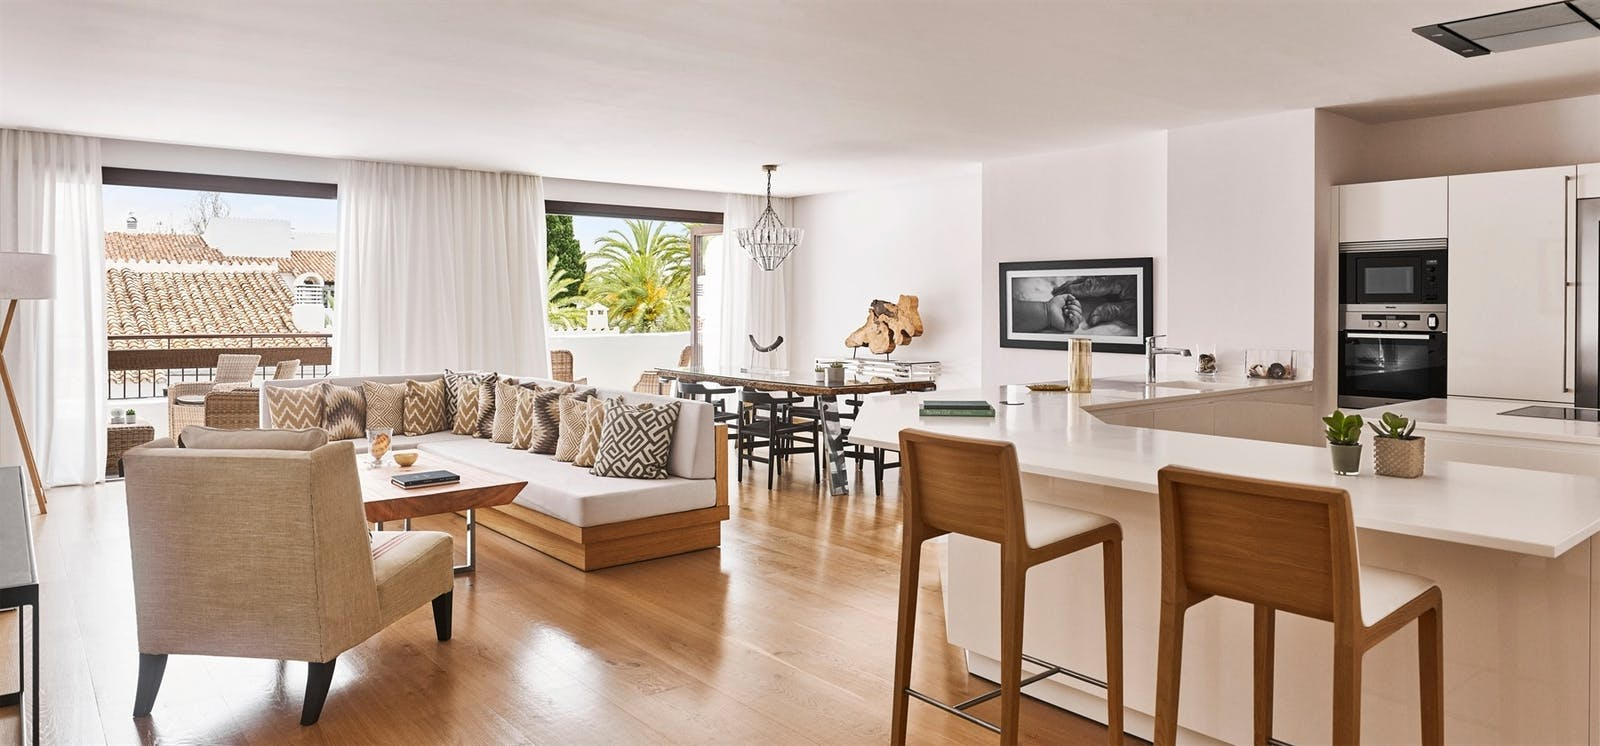 junior suite at nobu marbella costa del sol spain